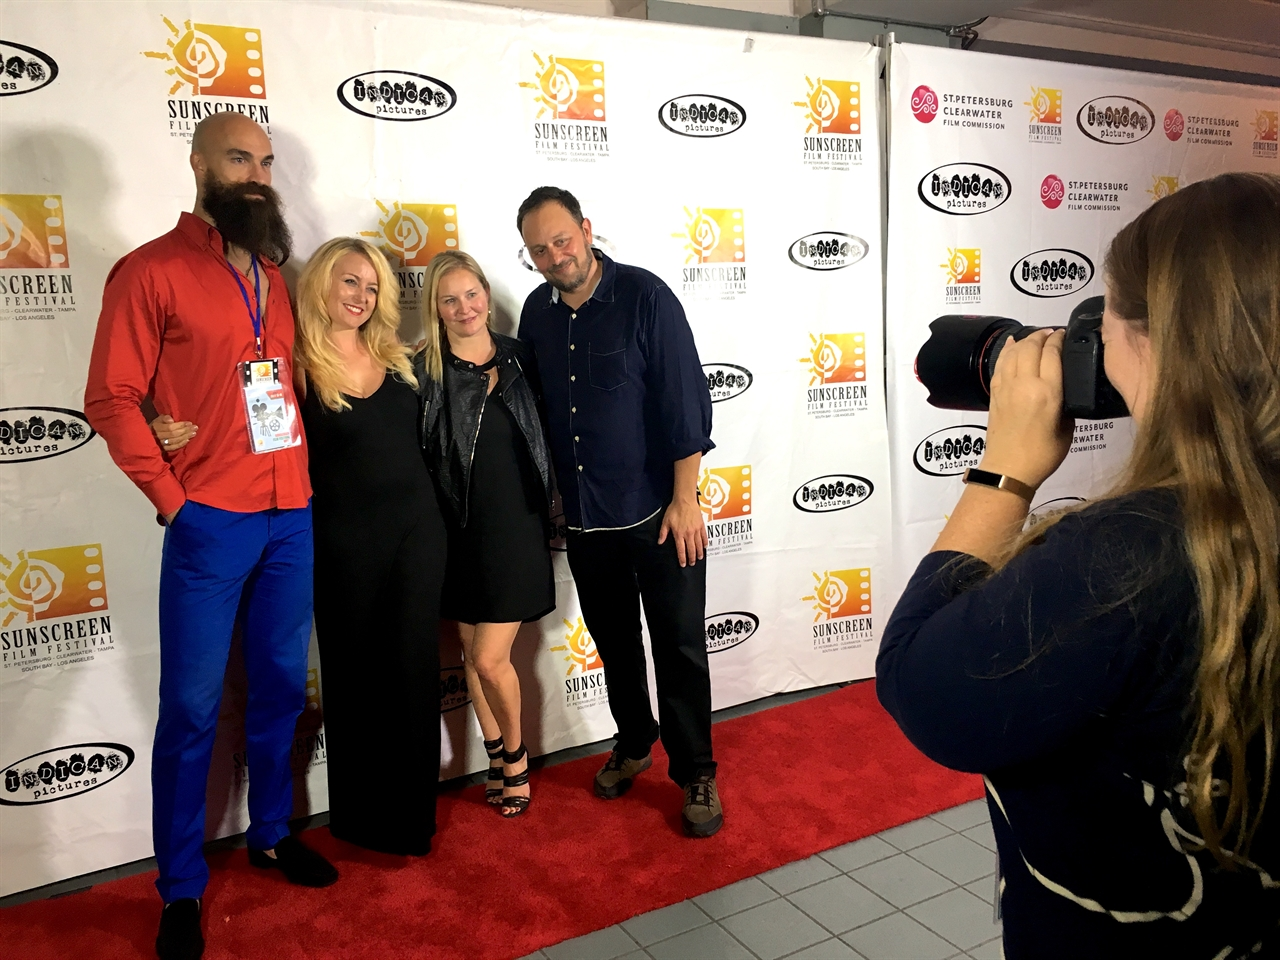 Janine with director Scott Donovan, producer and actress Rachel Ryling and actor Paul Duke at Sunscreen Film Festival